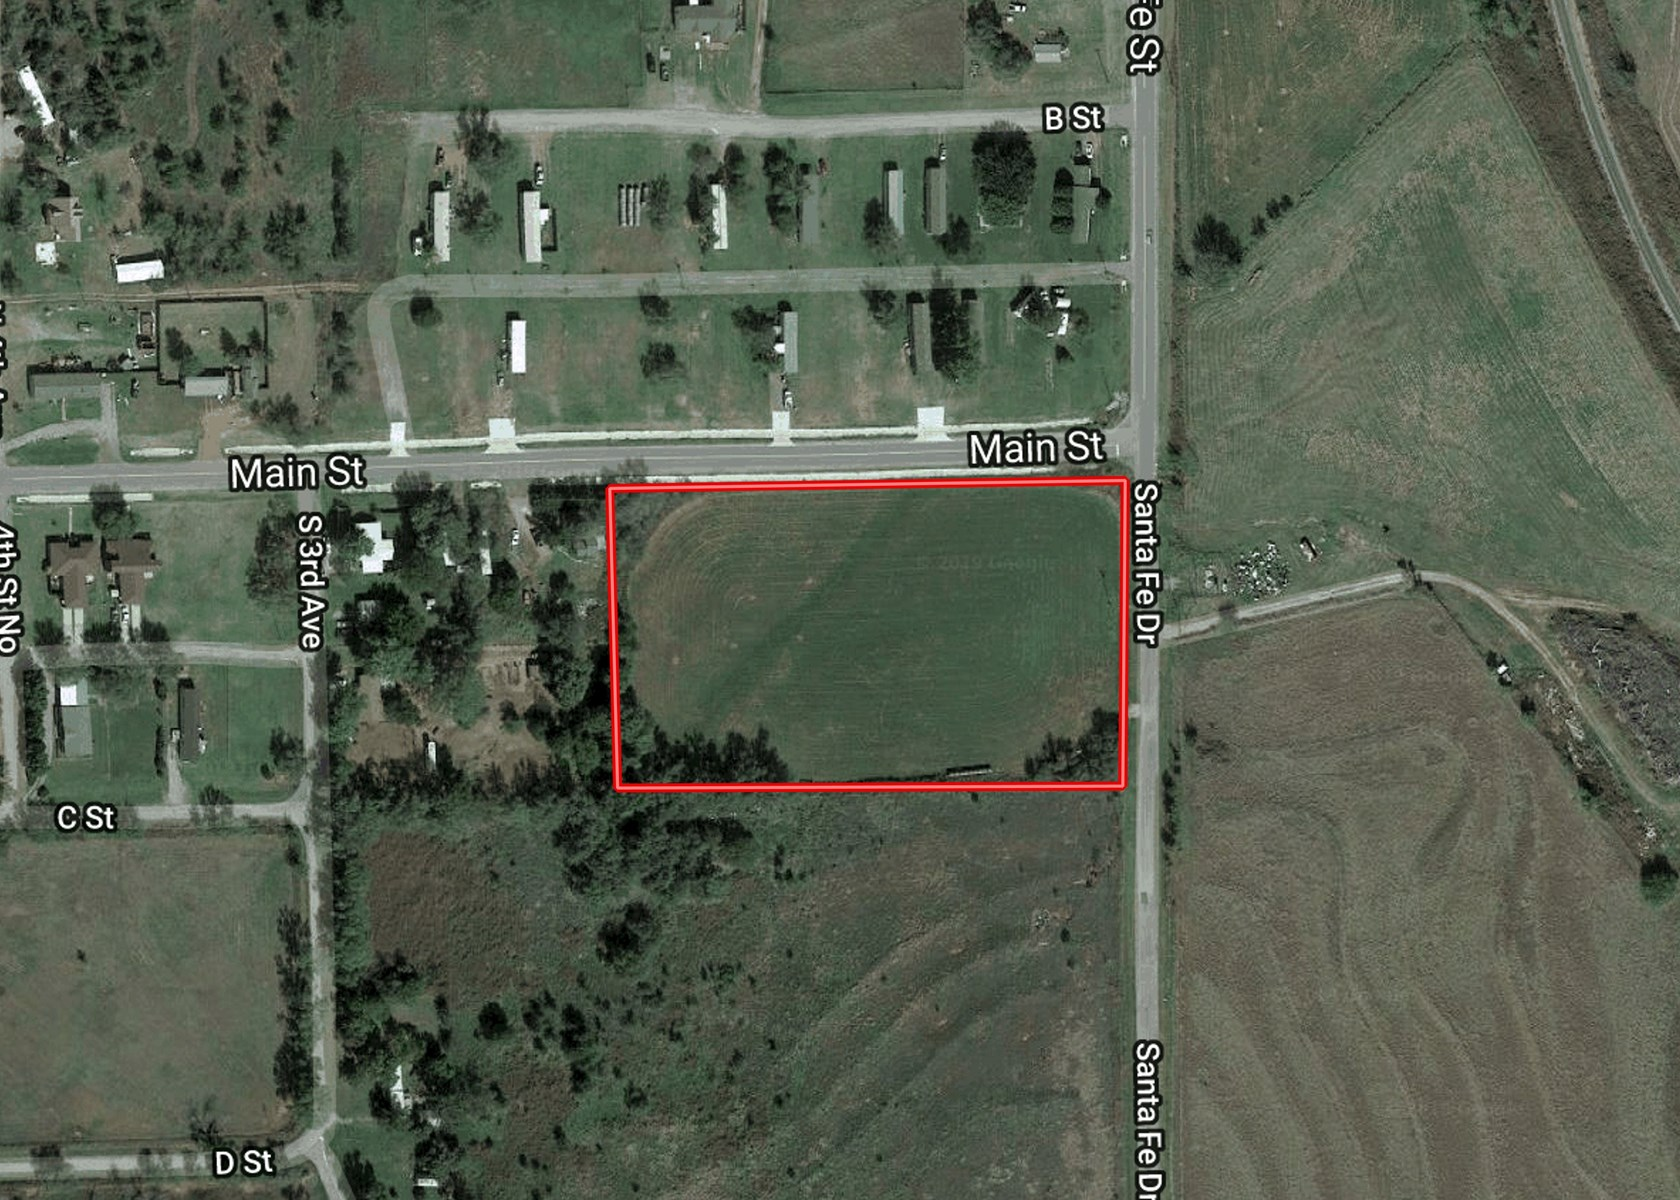 Commercial & Residential Land for Sale - Custer County ±4.5 Acres